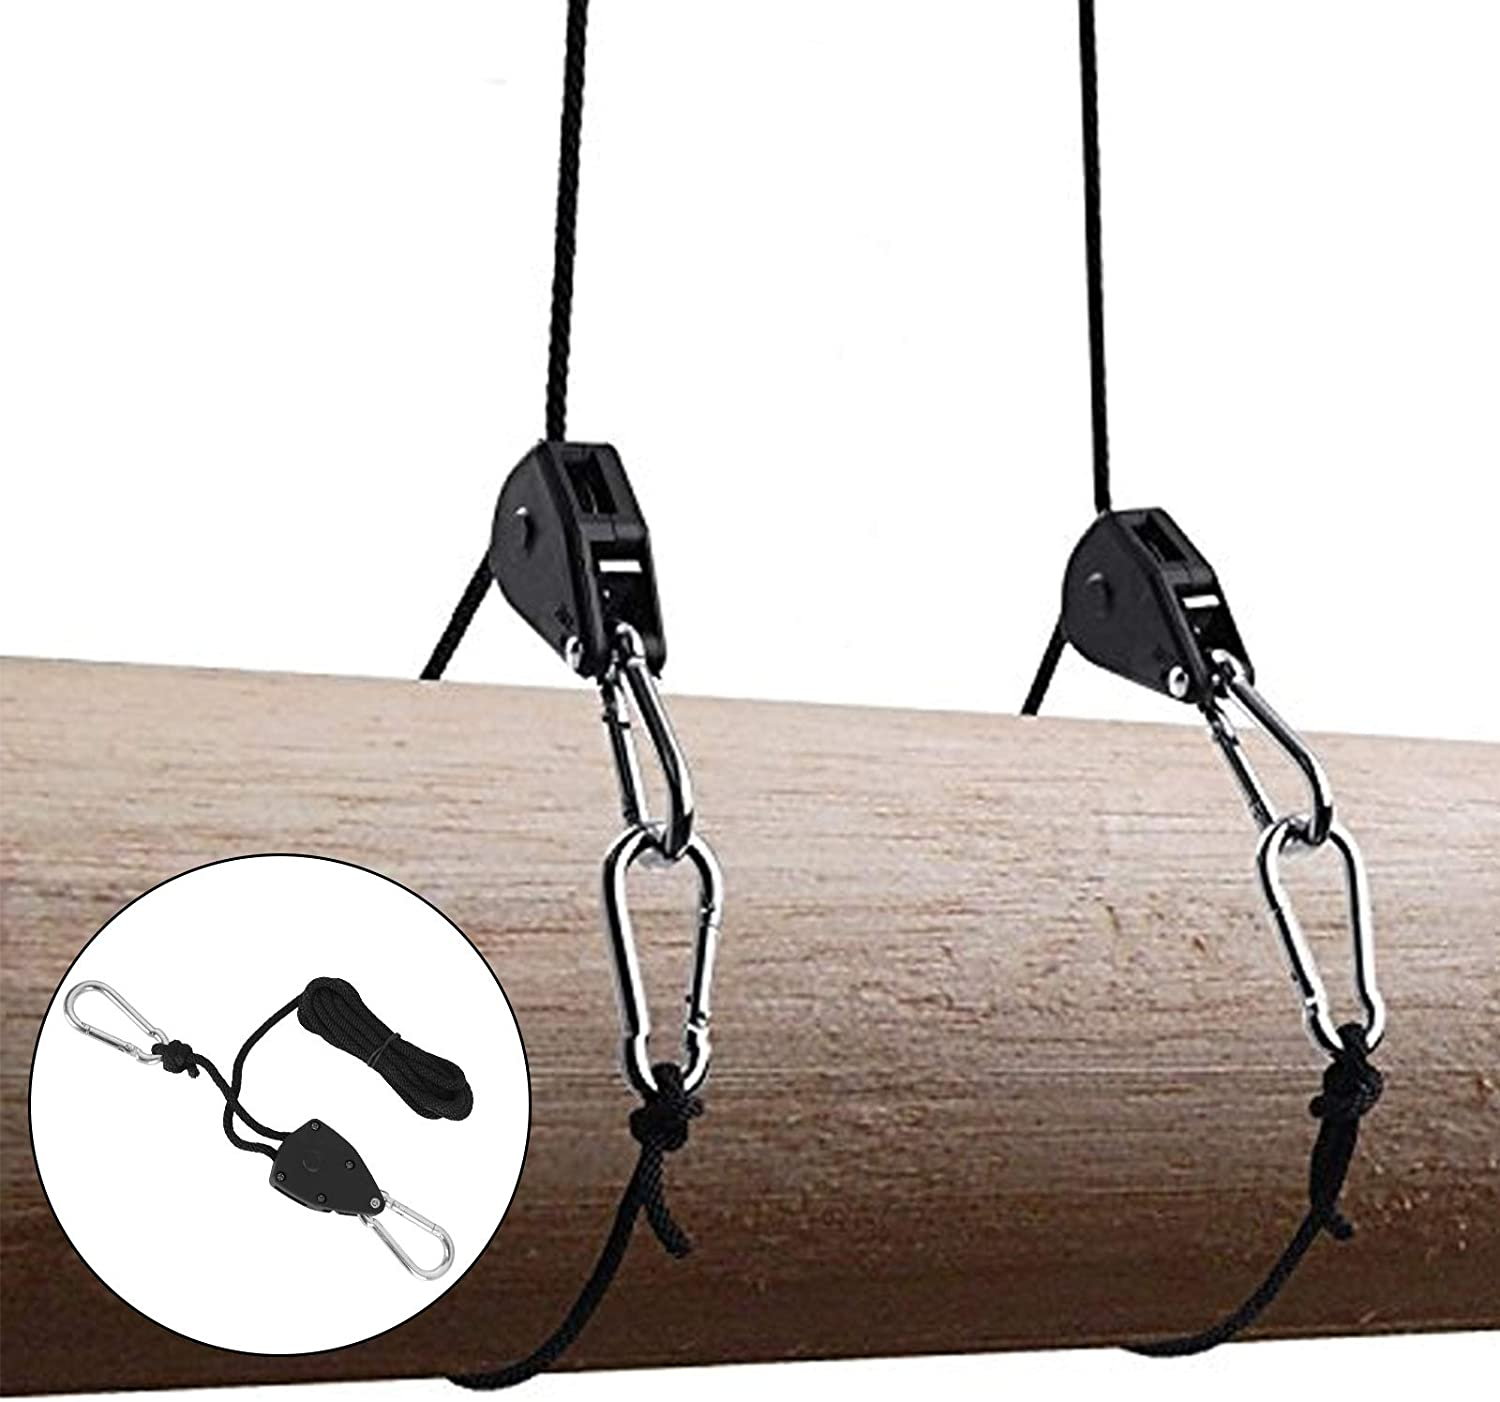 Weight Capacity 150 Lbs//Pair LANIAKEA 6Pcs Rope Ratchet 1//8 Adjustable Grow Light Rope Hanger 6.6 Ft M5 Carabiner Heavy Duty Rope Hanger Ratchet Tie Downs Straps for Kayak Canoe Bow Stern